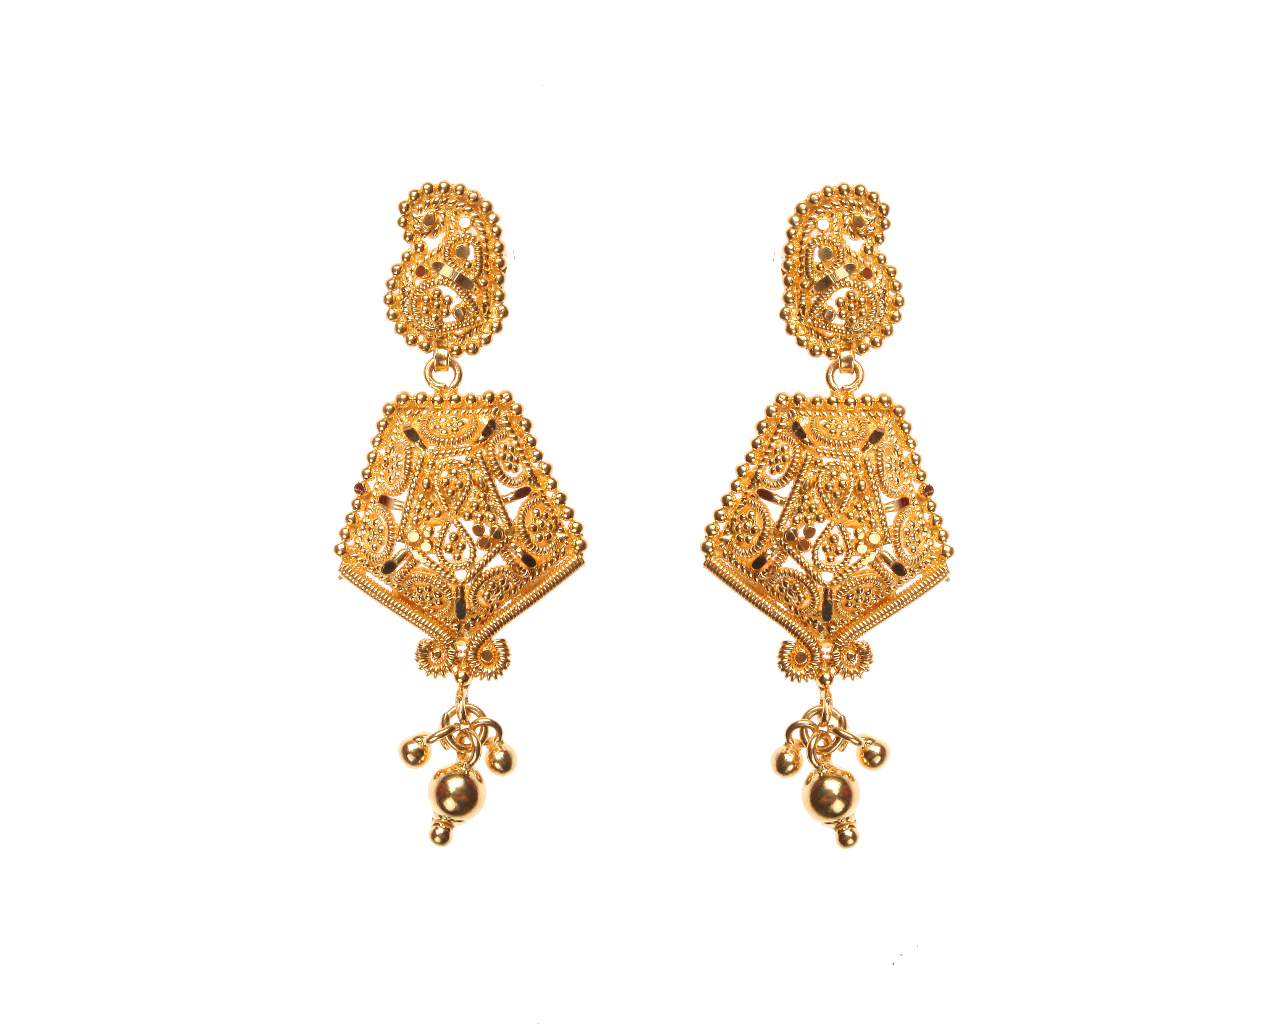 wallpaper jewellery images gold pinterest pin full earrings hd design